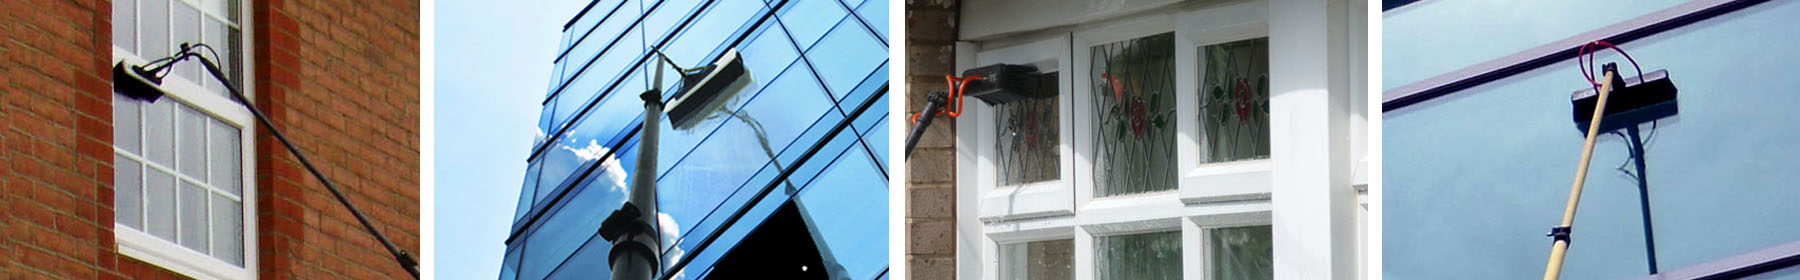 window cleaning with wfp